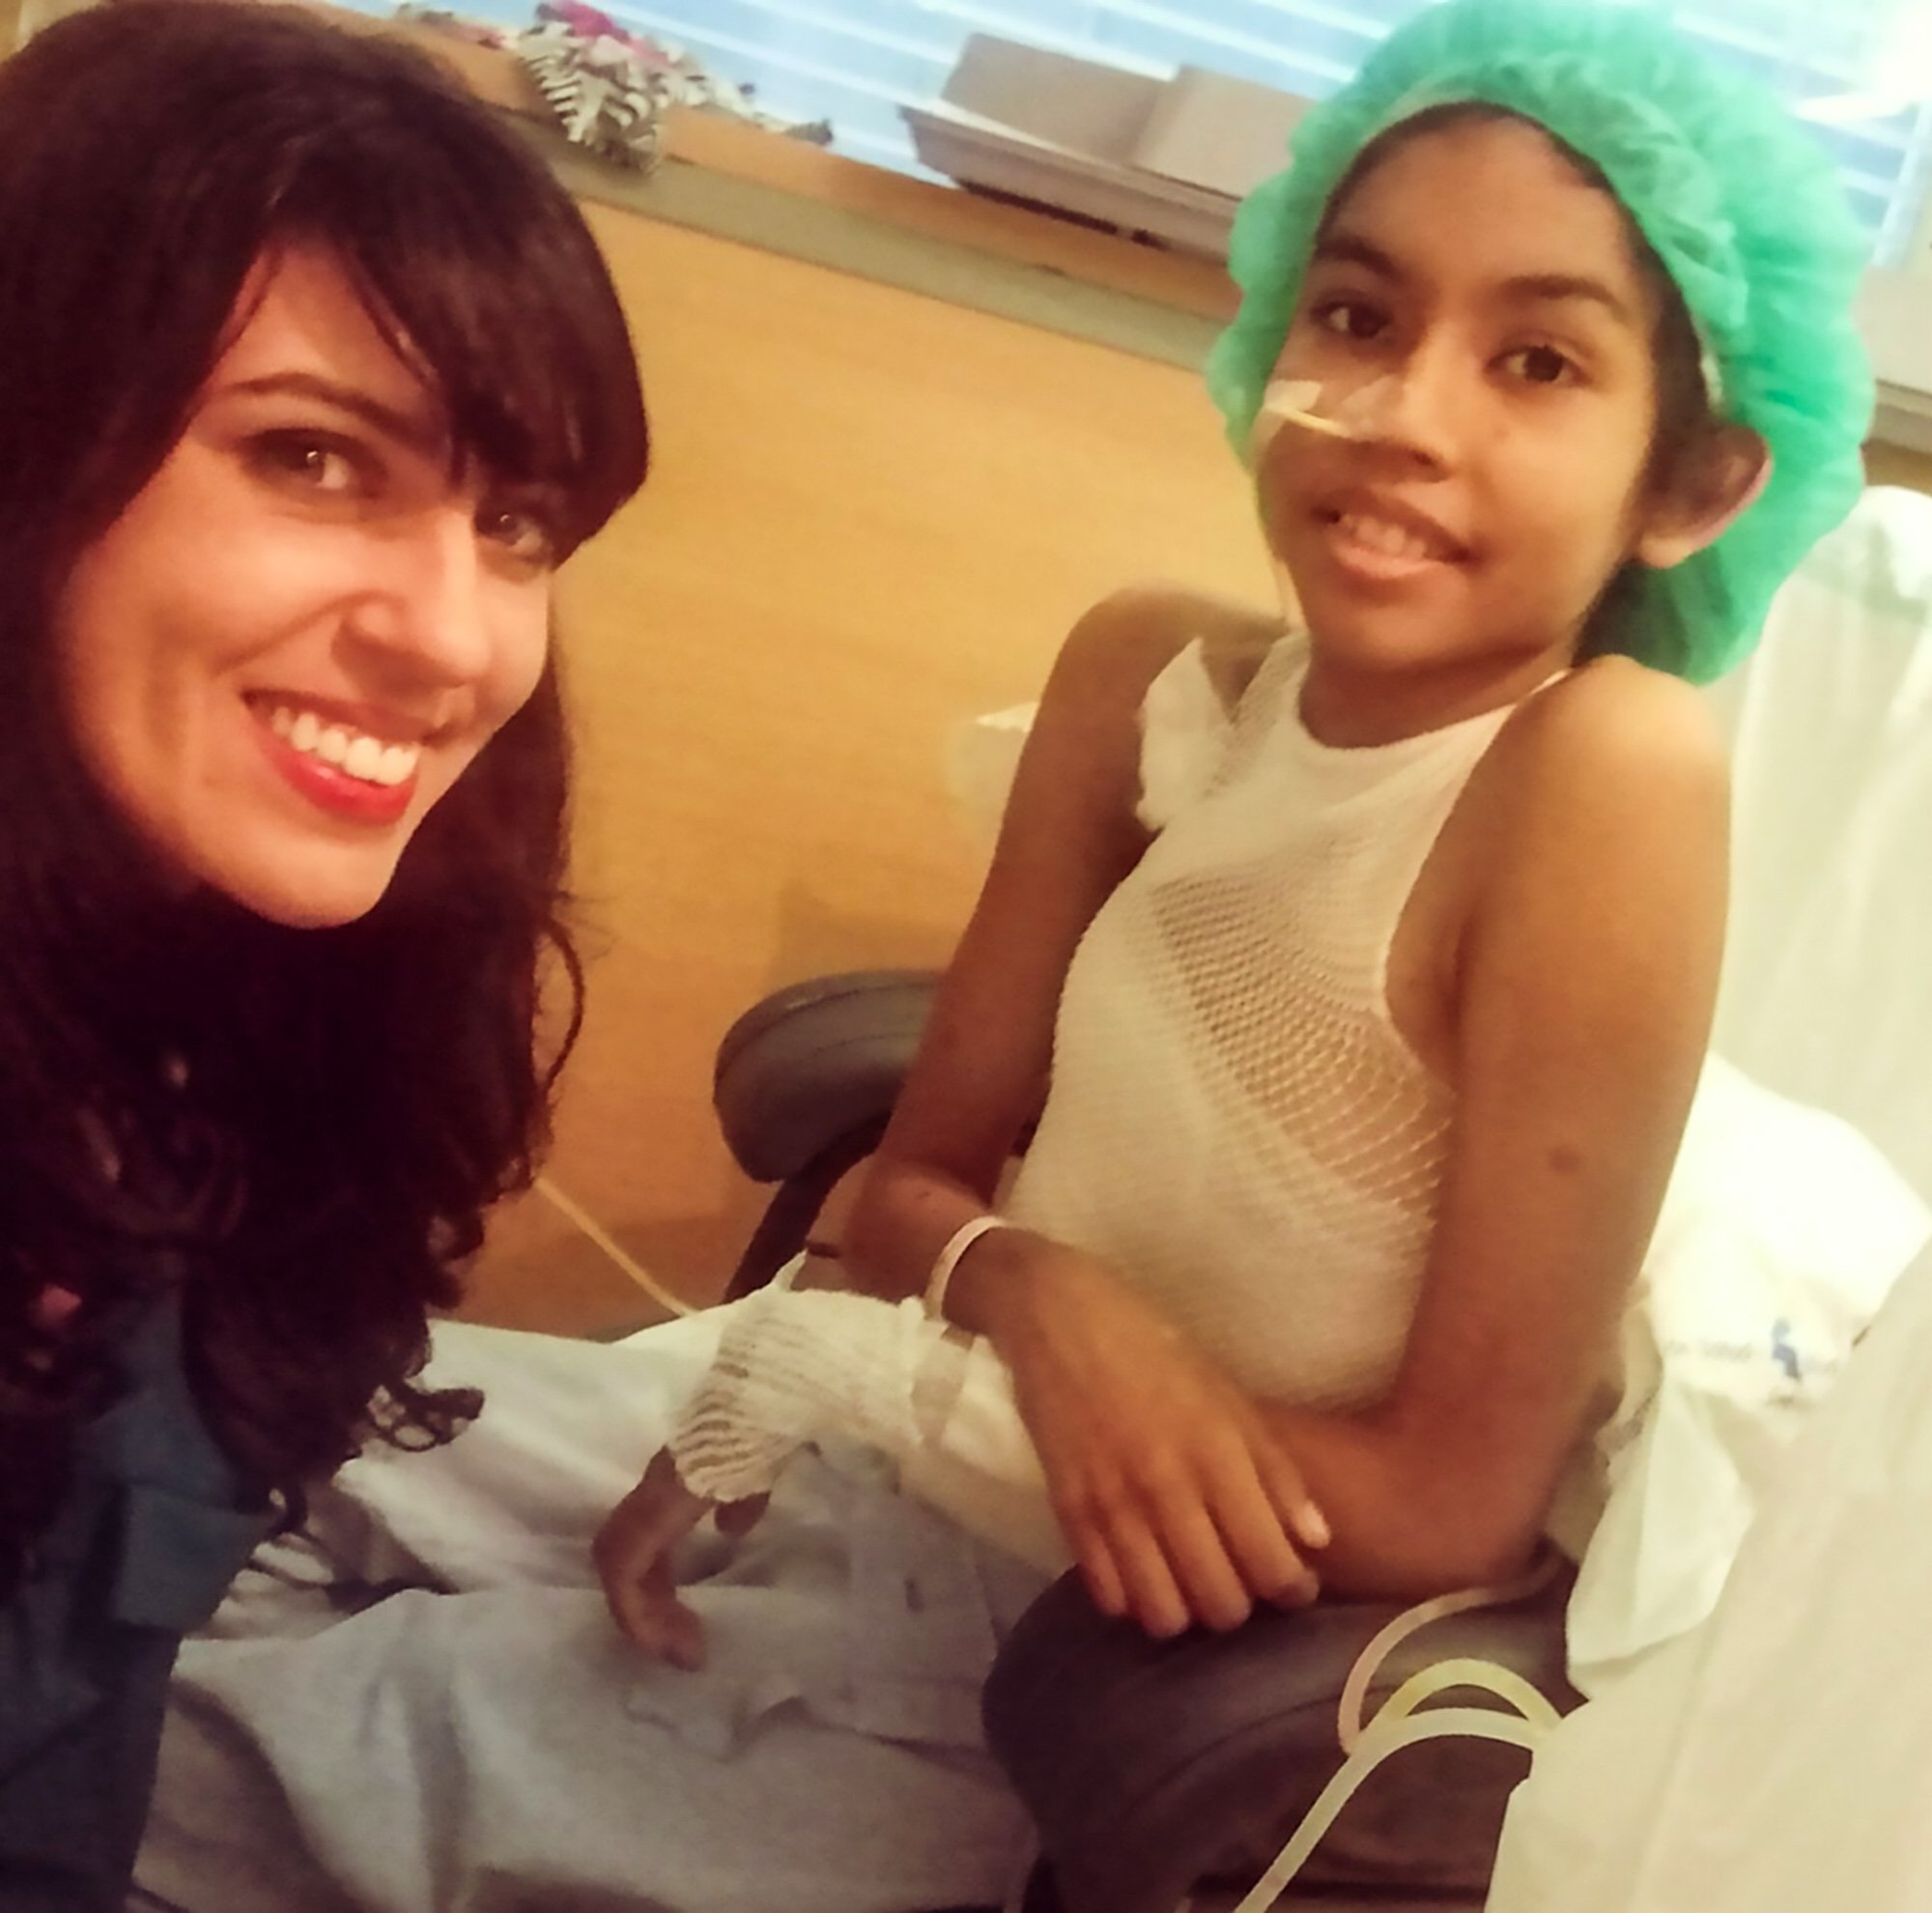 """Pic Shows: Andrea and the Foundation's representative; A 14-year-old girl with an enormous rare tumour who was """"abandoned"""" by her country???s health authorities has been saved by European doctors. The young teen was """"waiting to die"""" in her native Panama with no options to travel south to Colombia or north to the United States for specialised treatment. This is the assessment of Alba R. Santos, director of the Olloqui Children???s Foundation, who helped to bring the girl to Spanish capital Madrid to be treated at the La Paz Hospital. According to Alba, 14-year-old Andrea Nicolle Quijada???s case was """"one of real abandonment"""" at the hands of Panamanian authorities. Young Andrea was in constant agony with a huge tumour that was diagnosed as a paraspinal desmoid, usually considered benign because they rarely spread to different parts of the body. According to reports, the tumour was around 30 centimetres (12 inches) in diameter. Plastic surgeon at La Paz Hospital Juan Carlos Lopez Gutierrez told Central European News (CEN) that the """"tumour was not malignant"""" but was """"pressing against the girl???s spine"""" and affecting her """"kidneys and aorta"""". Andrea was able to move around, but the tumour affected her walking and restricted the activities she was able to take part in, such as playing with her siblings. According to Lopez Gutierrez, she had the tumour for four years. Panamanian doctors operated on her three times but the tumour kept on growing back and they finally concluded that it was """"inoperable"""" and would reportedly only offer her palliative care. Andrea has already undergone three operations at the Spanish hospital after she was first helped by a Panamanian journalist in her native country. Luis Casis heard about the teen???s rare tumour and informed his friend Alba at the Madrid-based Olloqui Children???s Foundation. Alba said that the girl was """"abandoned"""" and """"waiting to die"""", adding that she said that the tumour was """"getting worse and its smell was dif"""